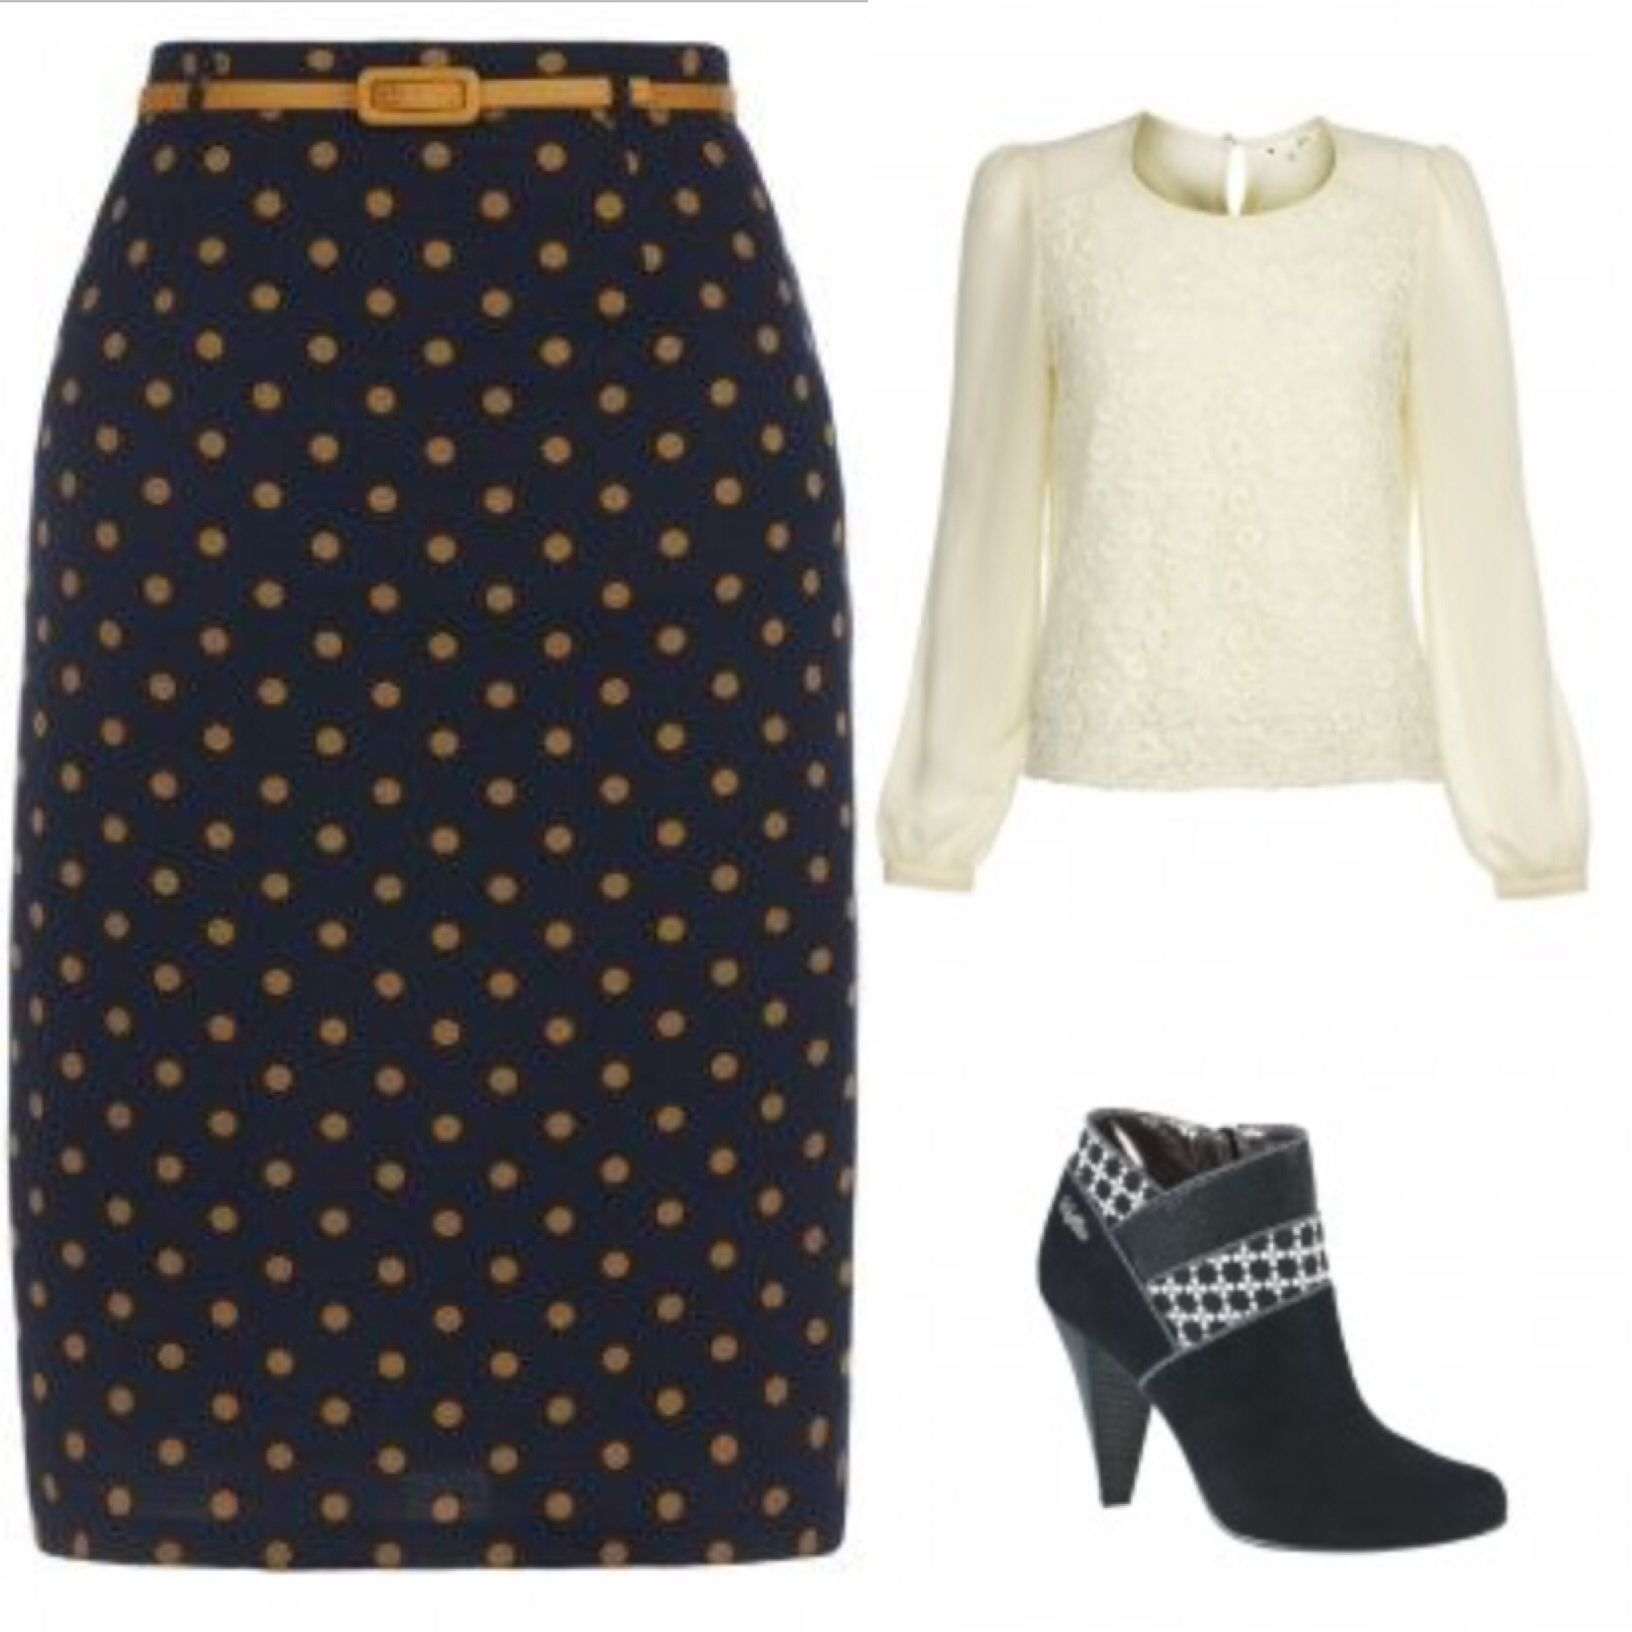 LOVE this skirt, would make a great work-into-nighttime look with the Yumi lace fronted blouse and the gorgeous heels. @Yumi Direct  #pintowin #adore @Yumi Direct